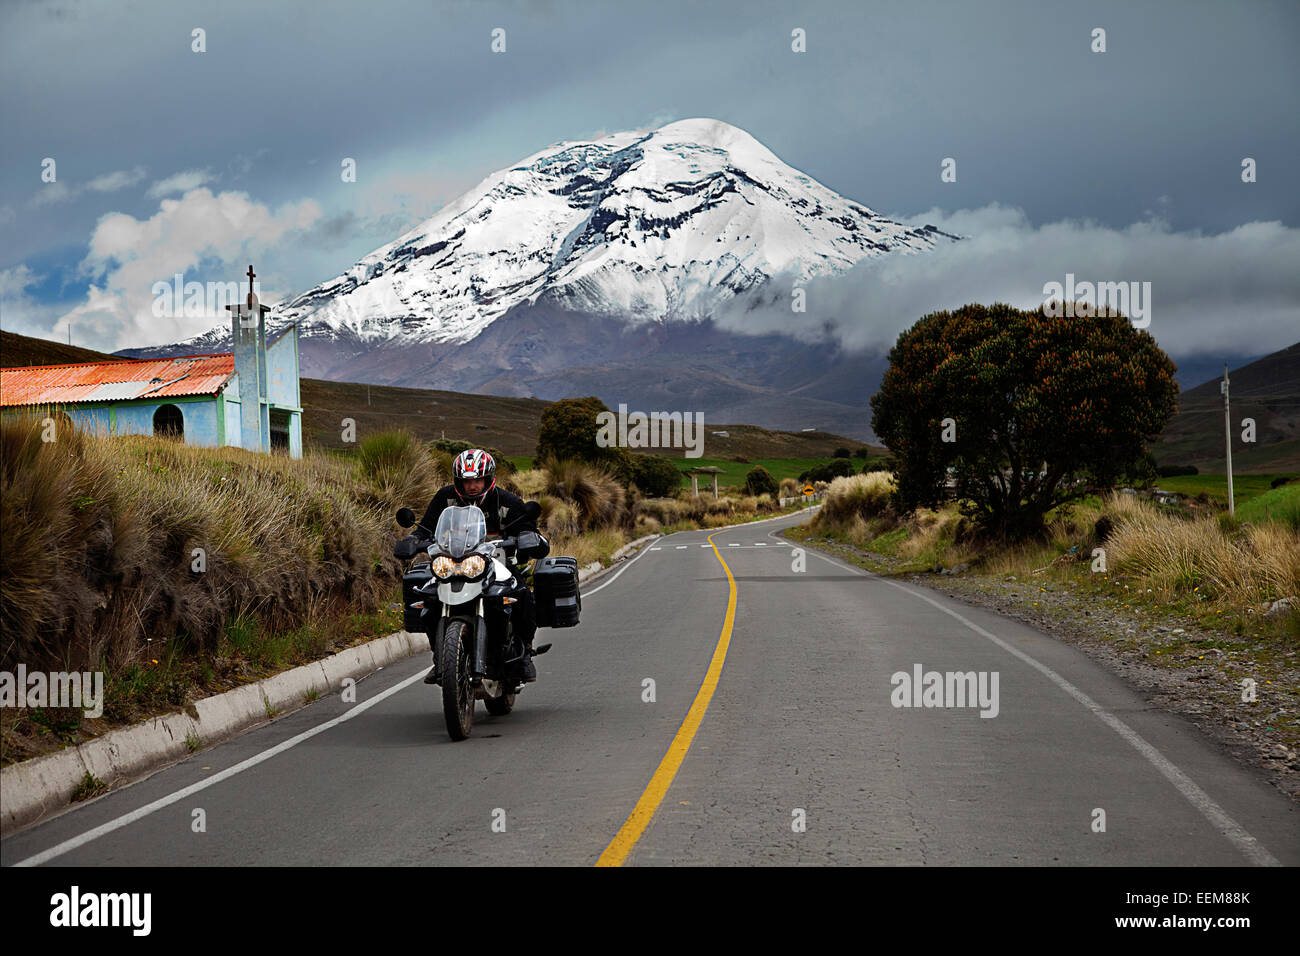 Ecuador, View of man riding motorbike with Chimborazo volcano in background Stock Photo